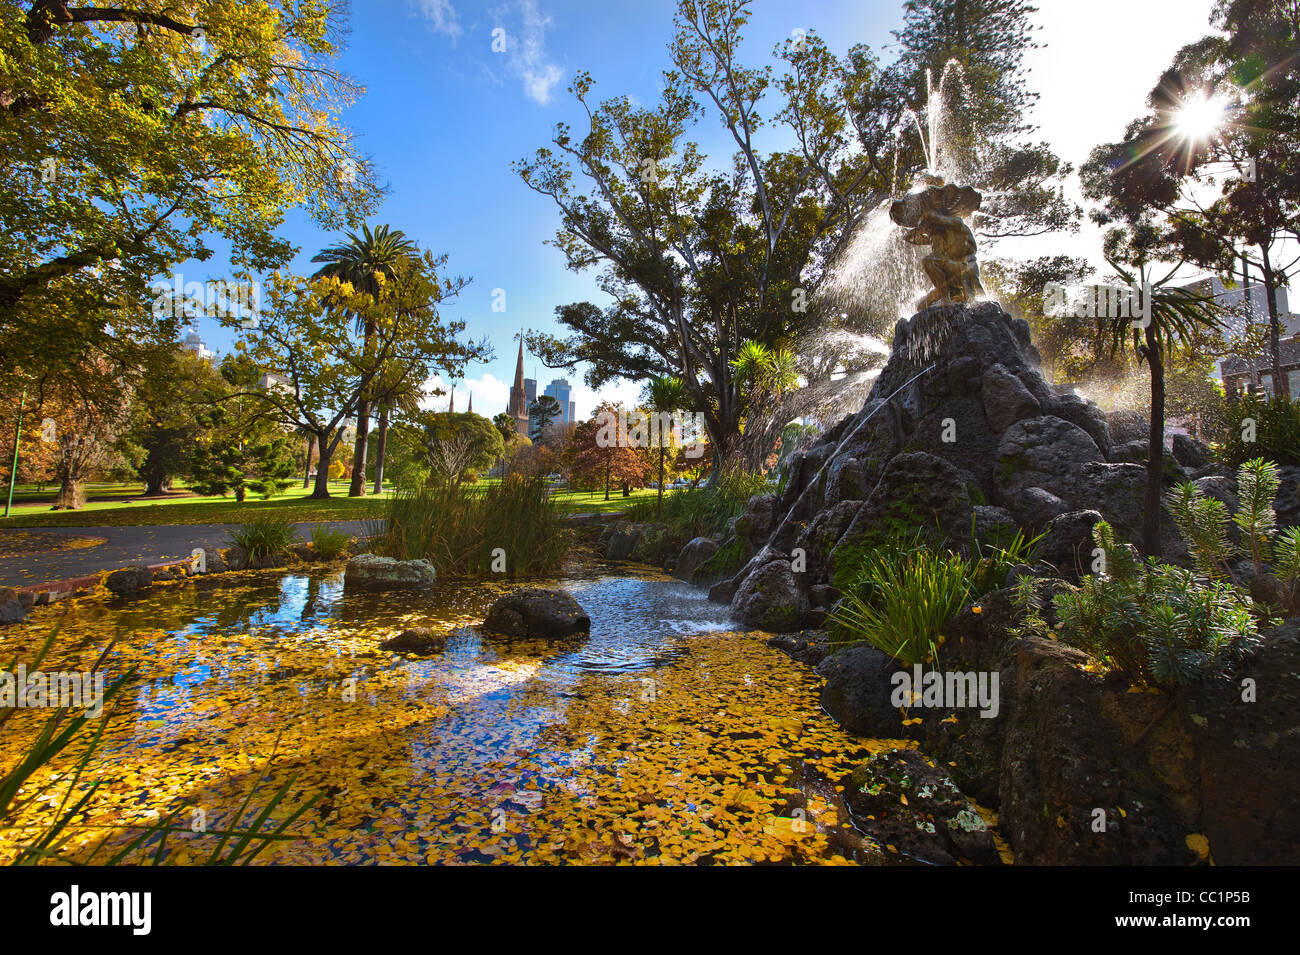 how to go to fitzroy garden